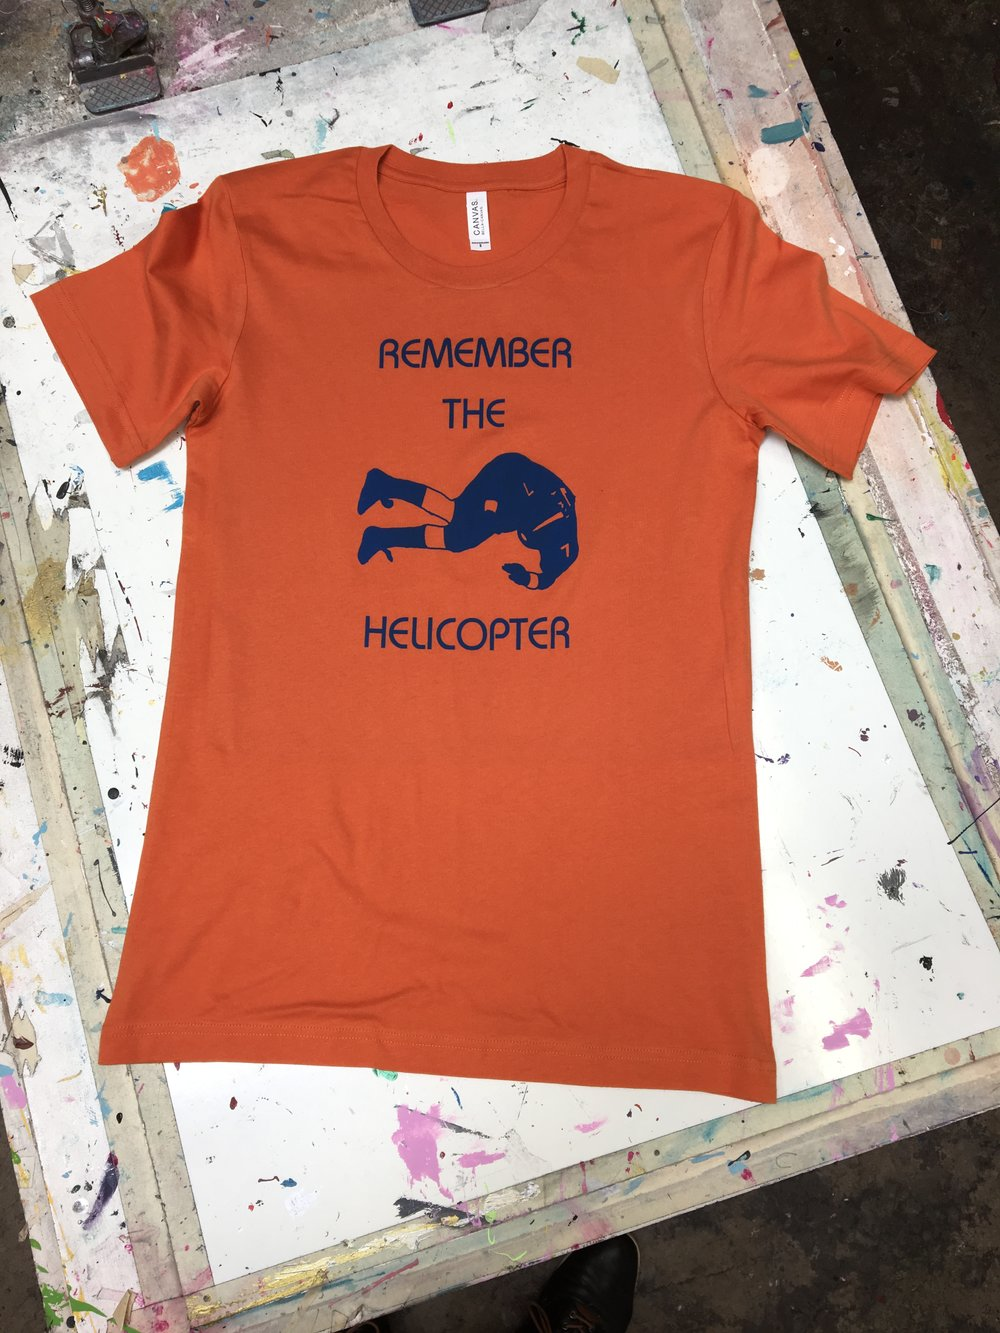 It's a new season, but let's not forget our first love, remember the helicopter - COMING SOON!